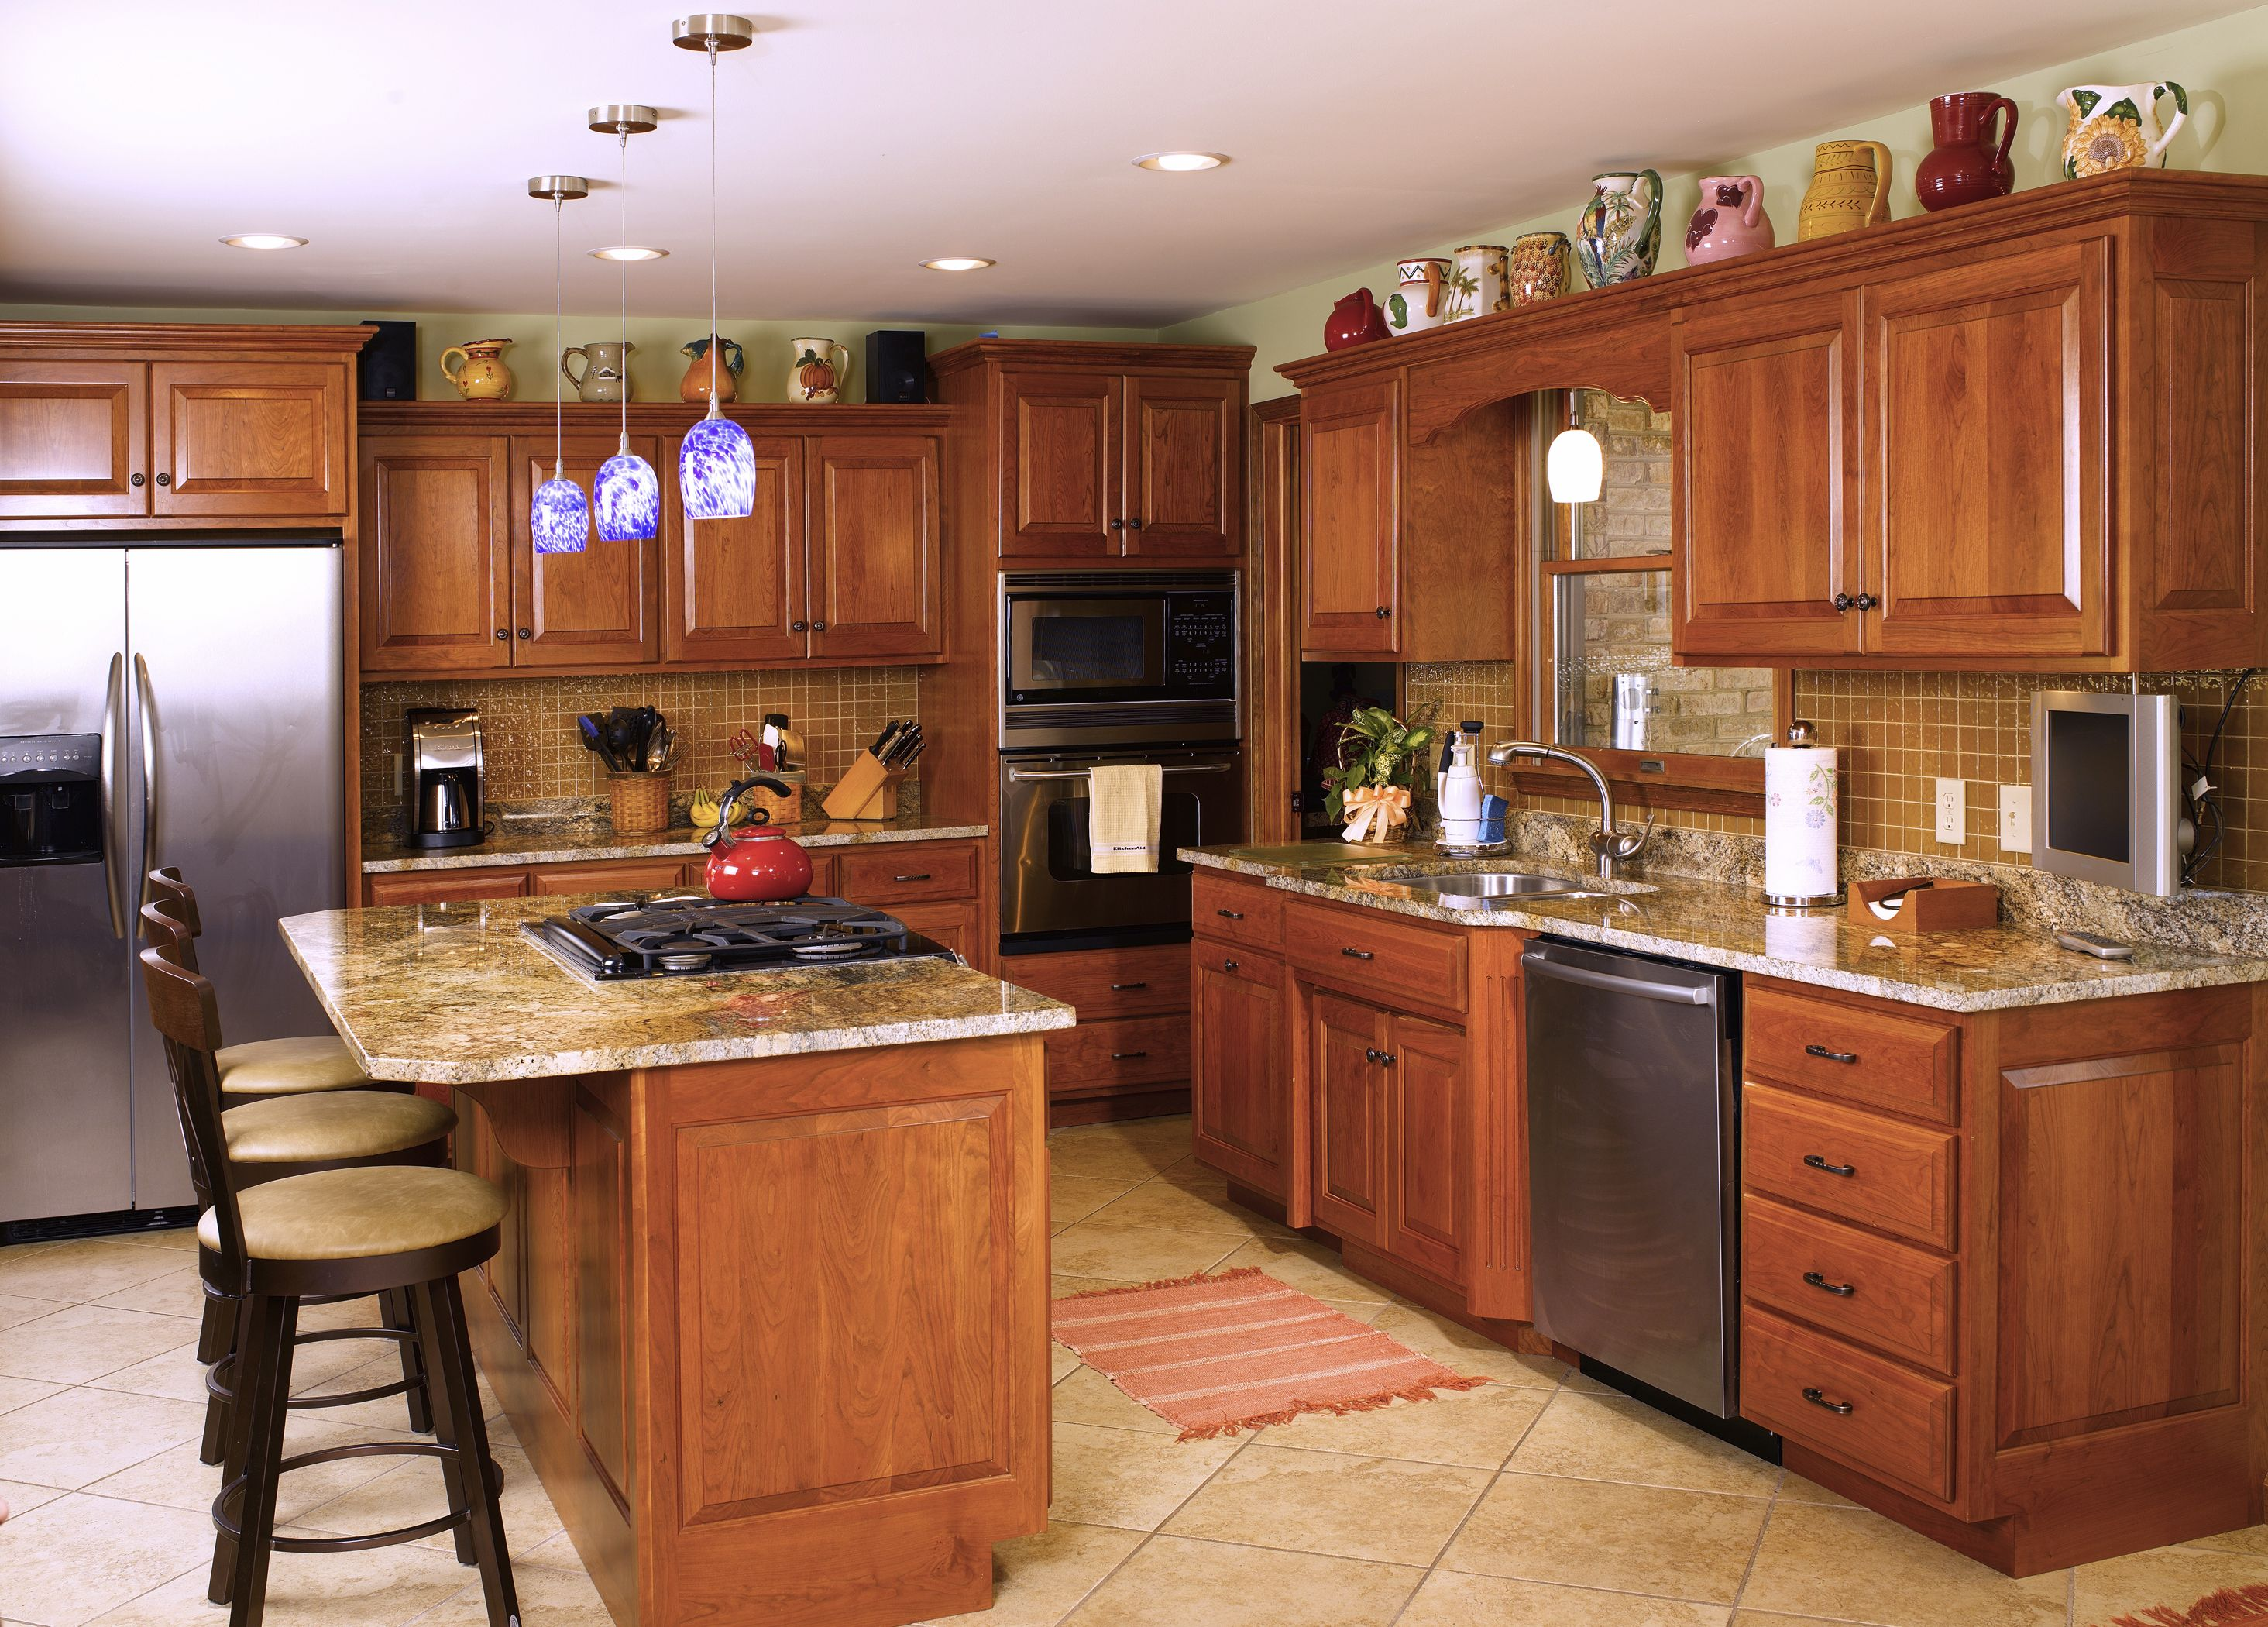 Amish Built Kitchen Amish Kitchen Cabinets Kitchen Cabinets Reviews Cherry Cabinets Kitchen